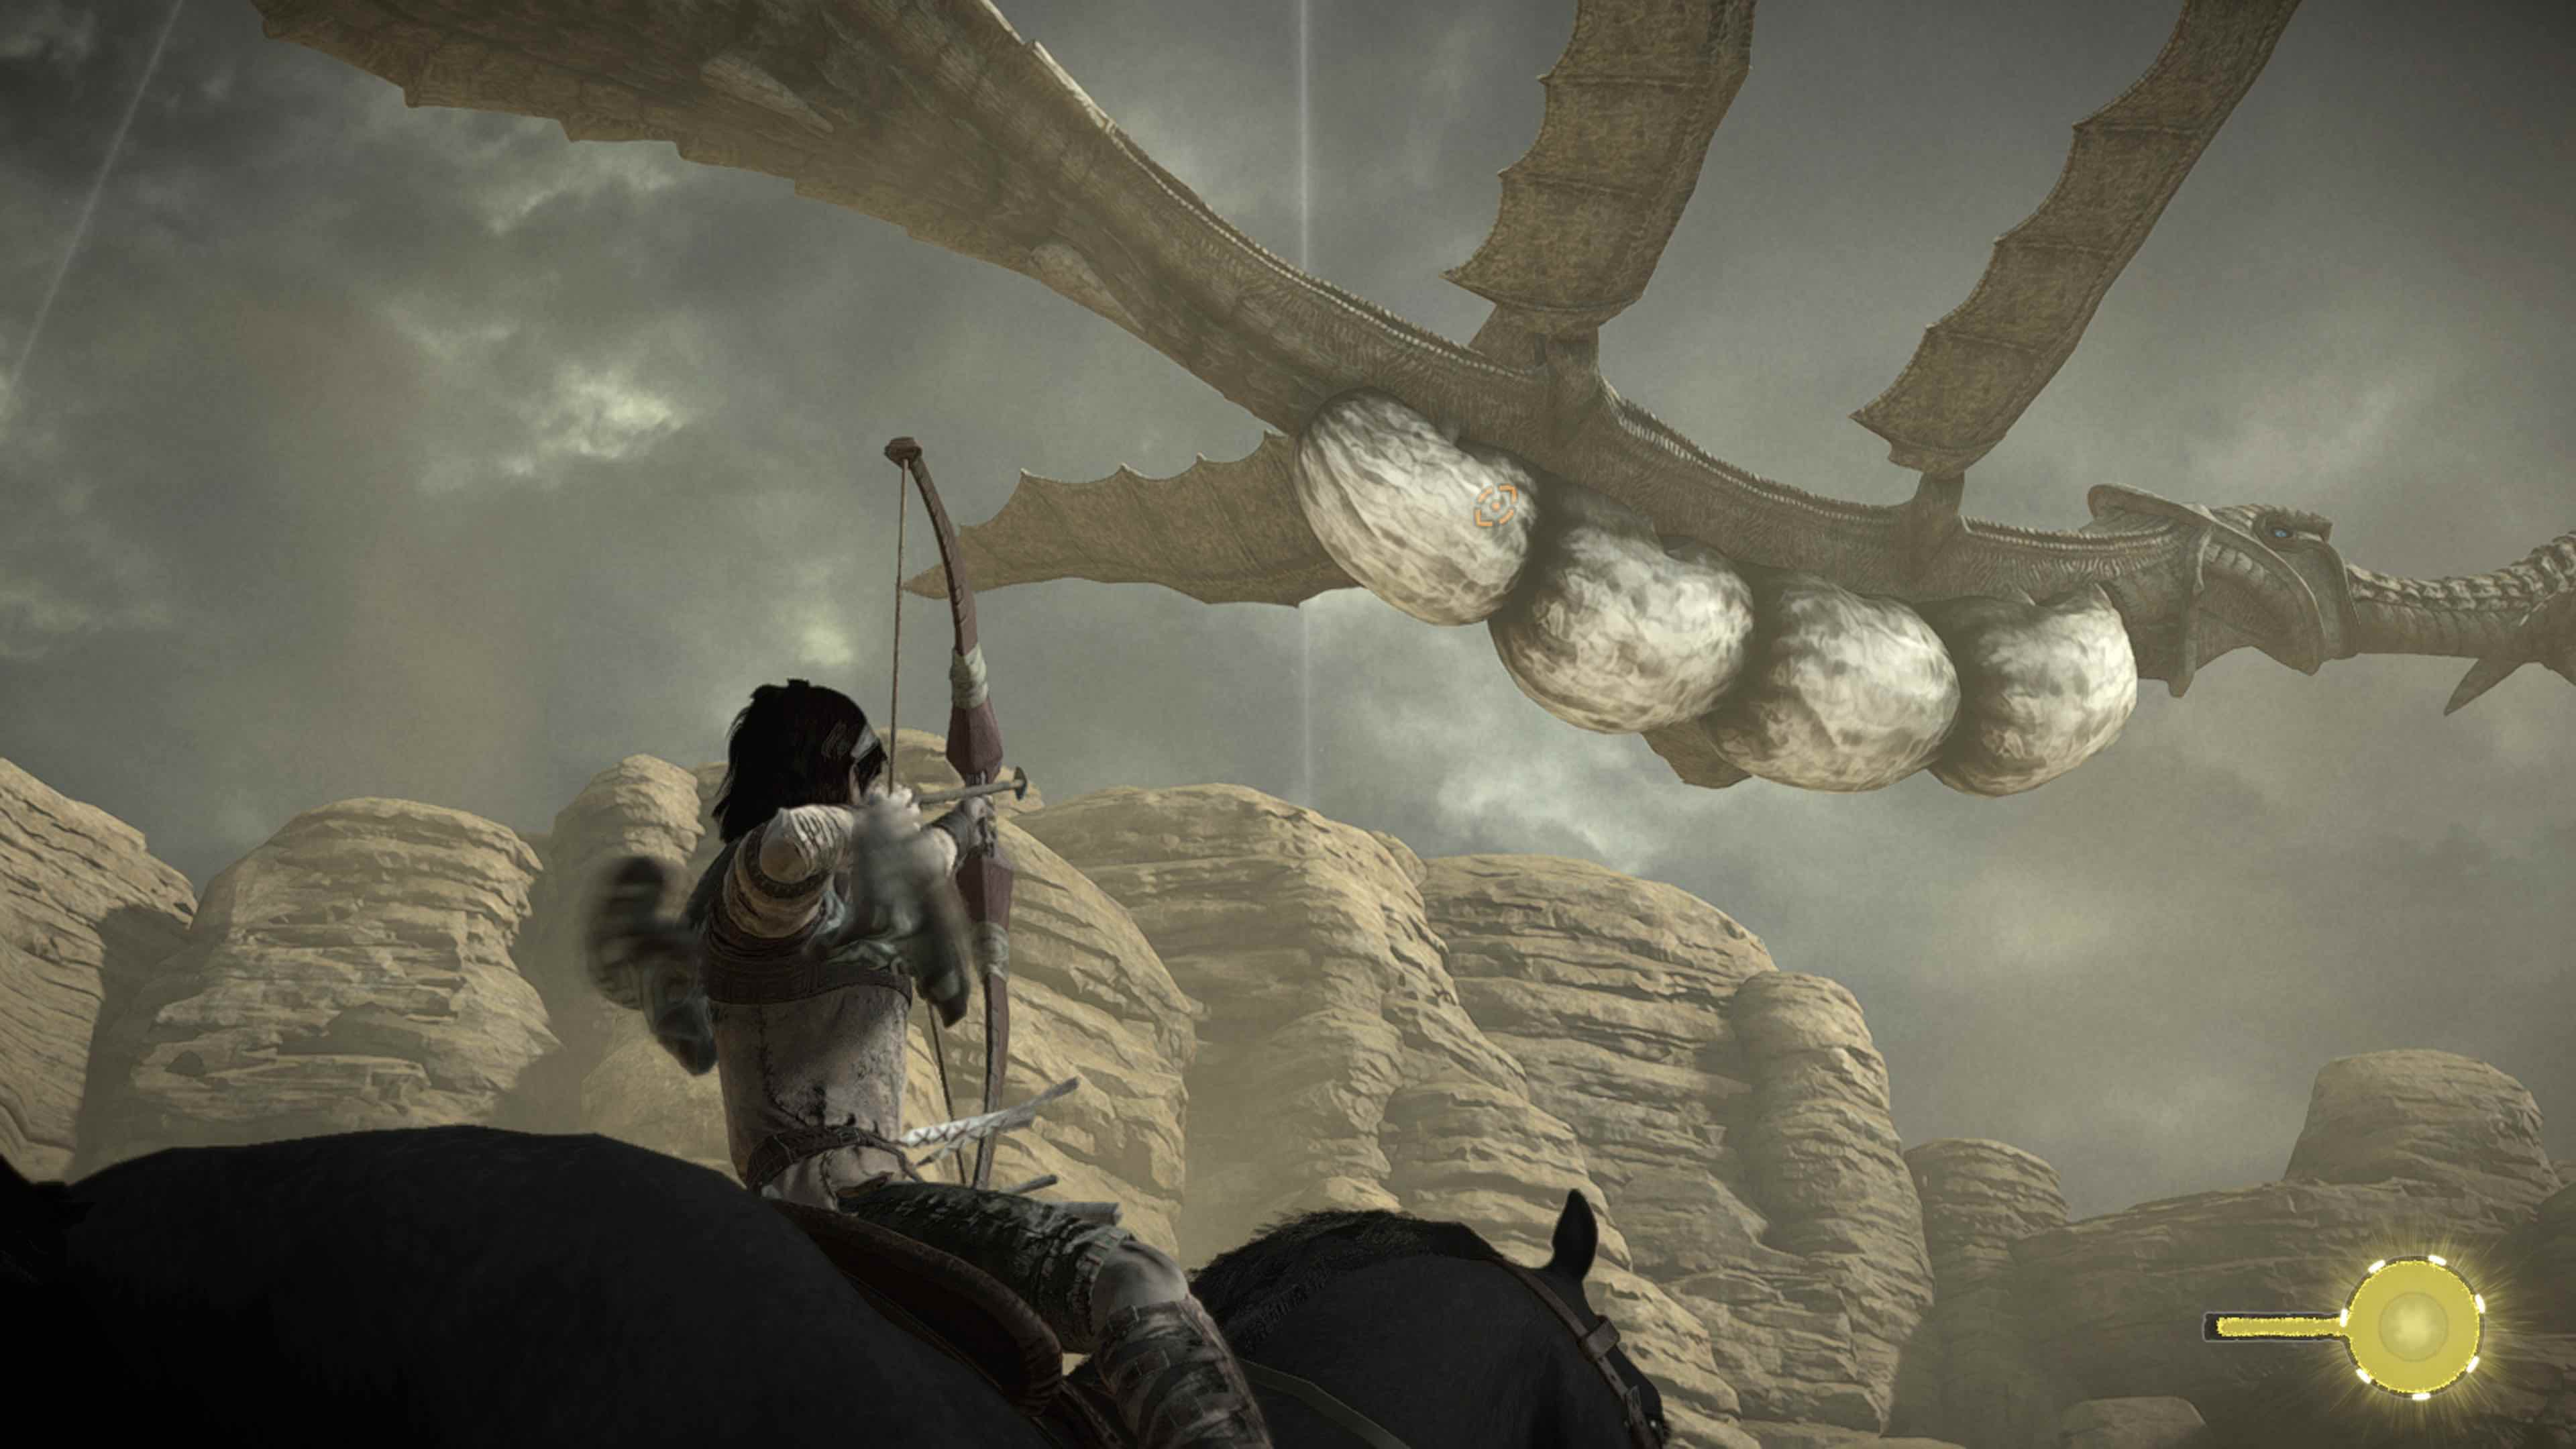 Shadow_of_the_Colossus_Coloso_13_3